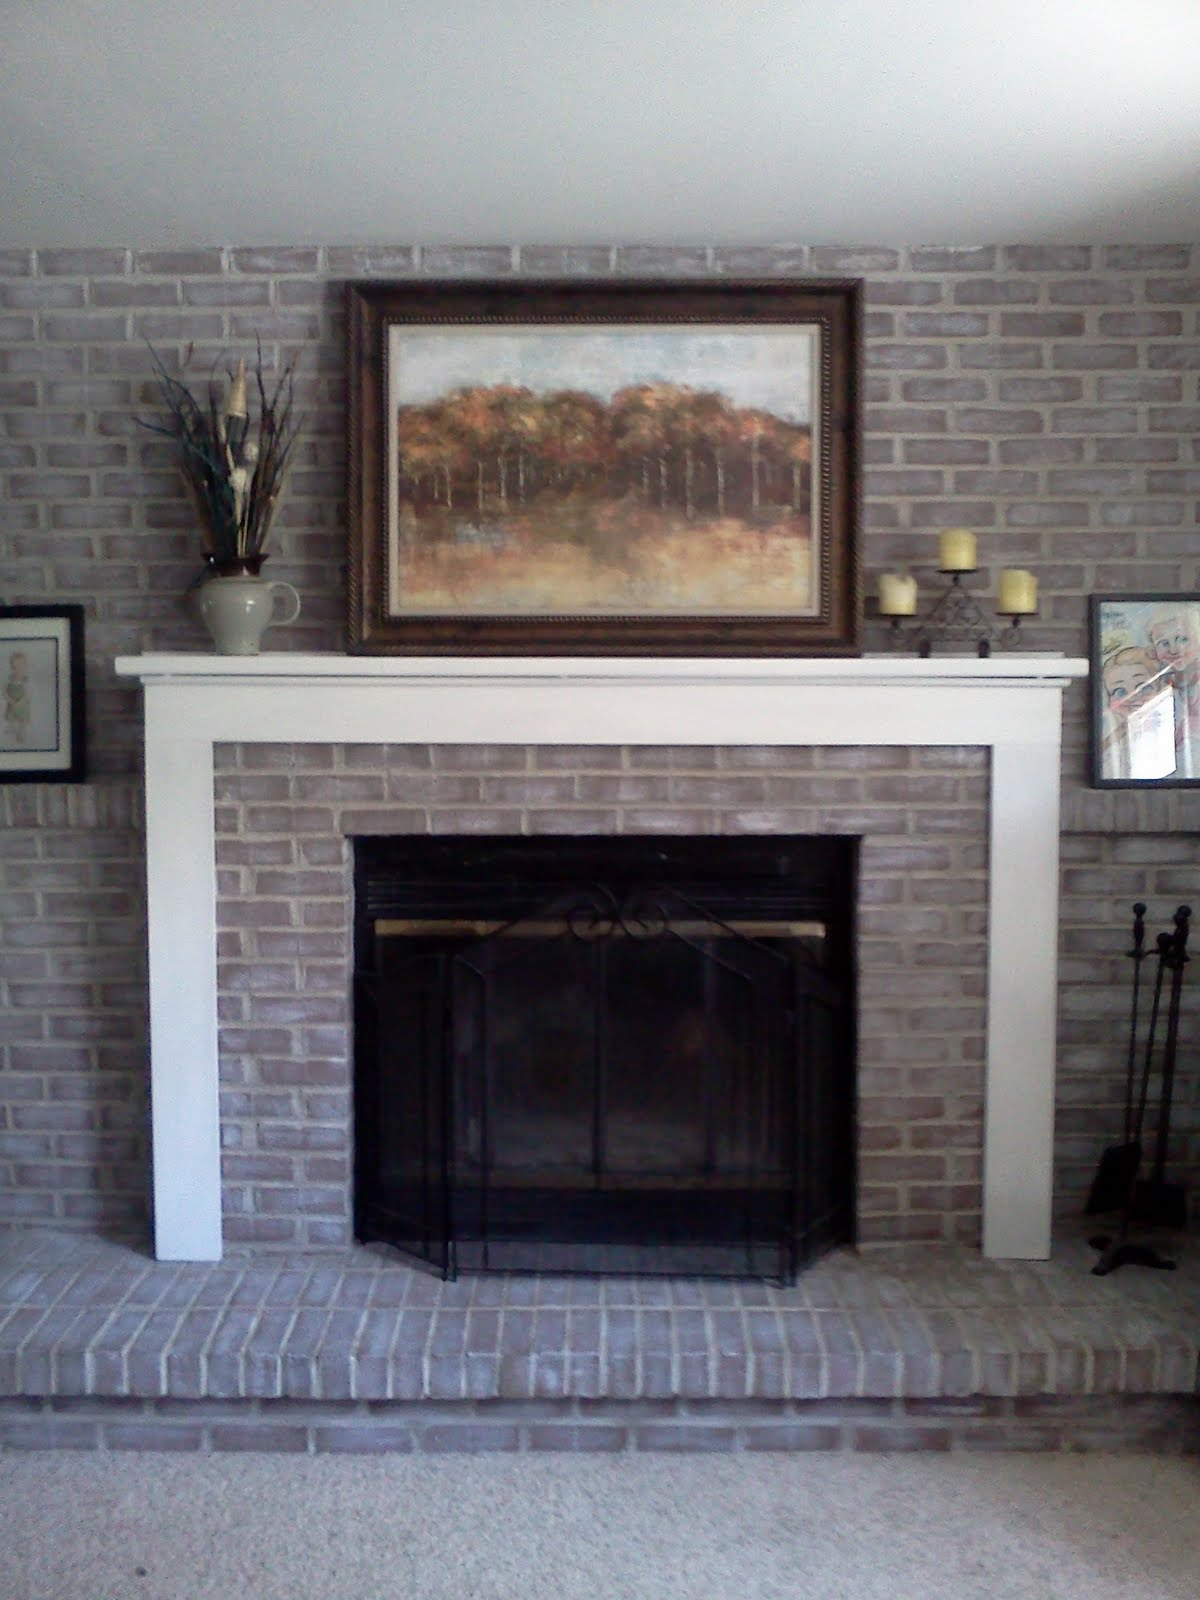 Diy brick fireplace makeover fireplace design ideas for Diy fireplace remodel ideas